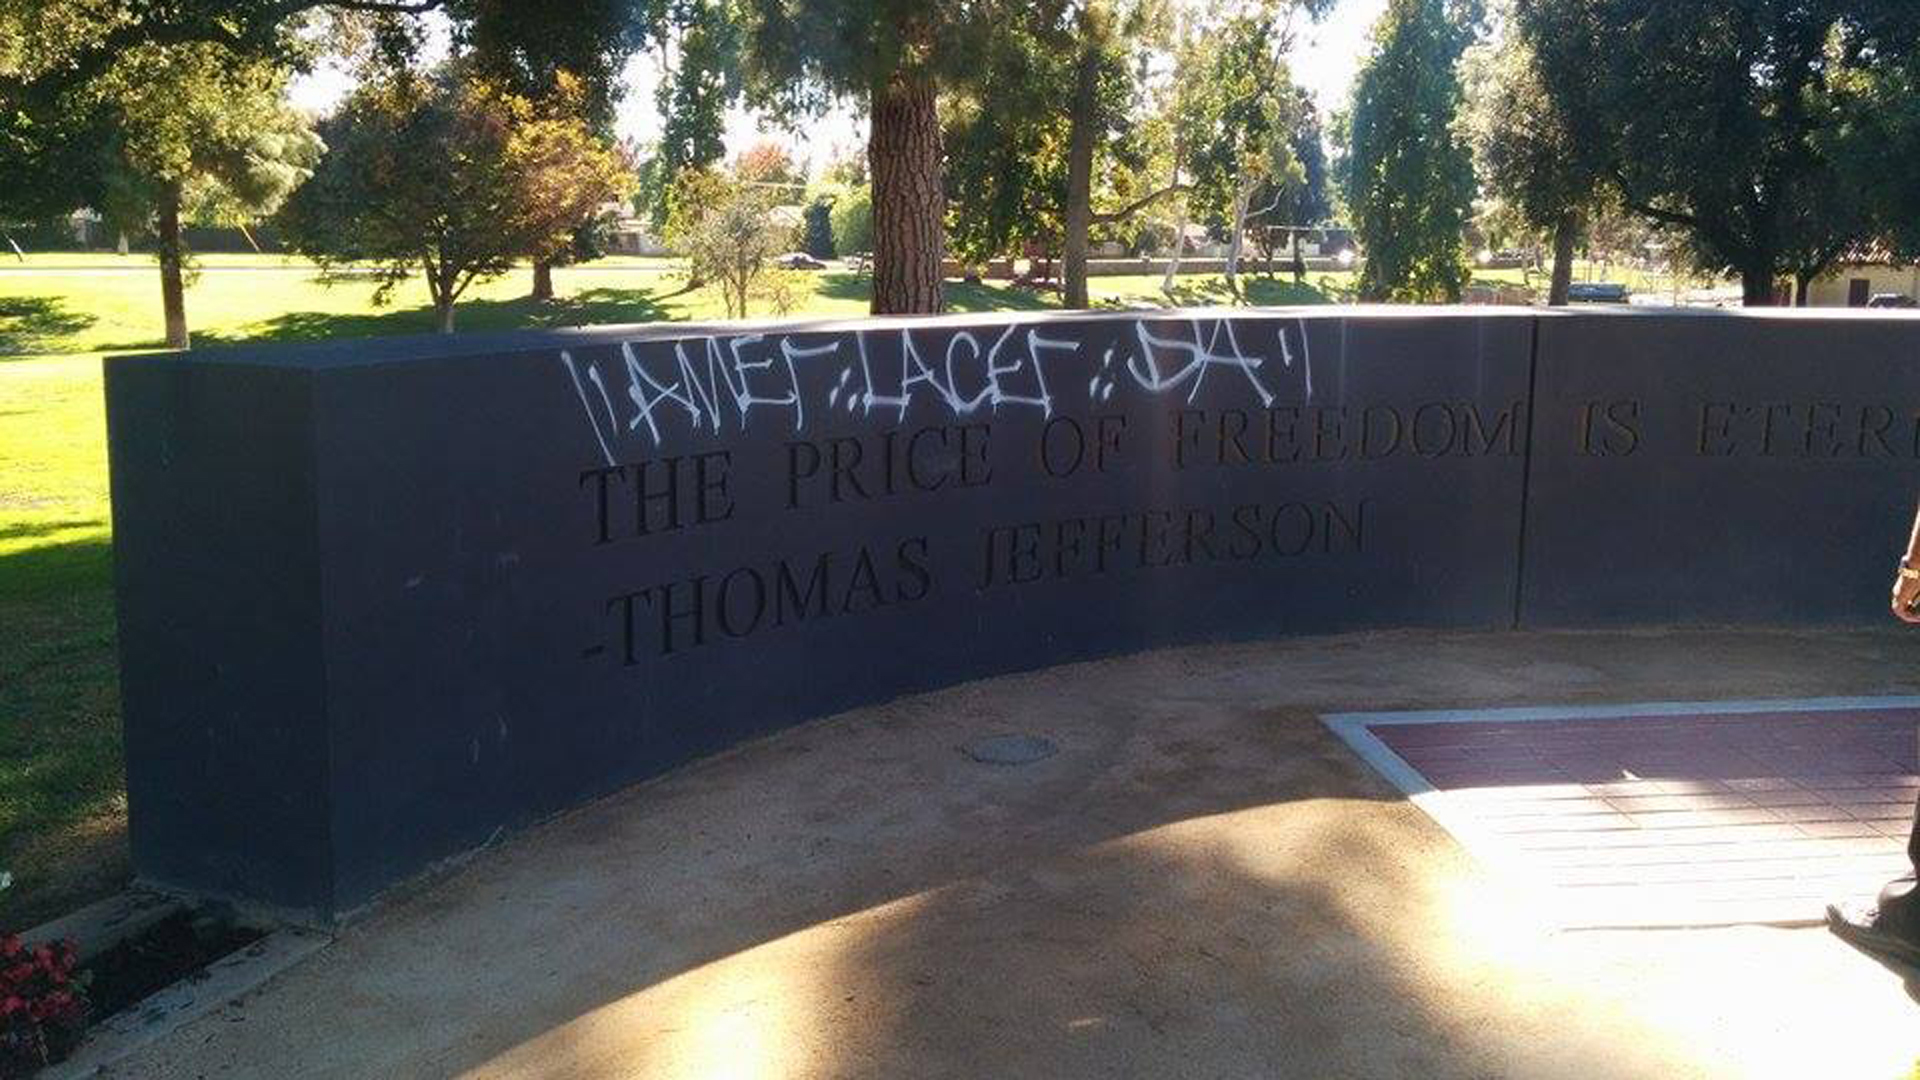 An 18-year-old was arrested on Nov. 10, 2014, for allegedly tagged a veterans memorial in Alhambra, police say. (Credit: Alhambra Police Department)